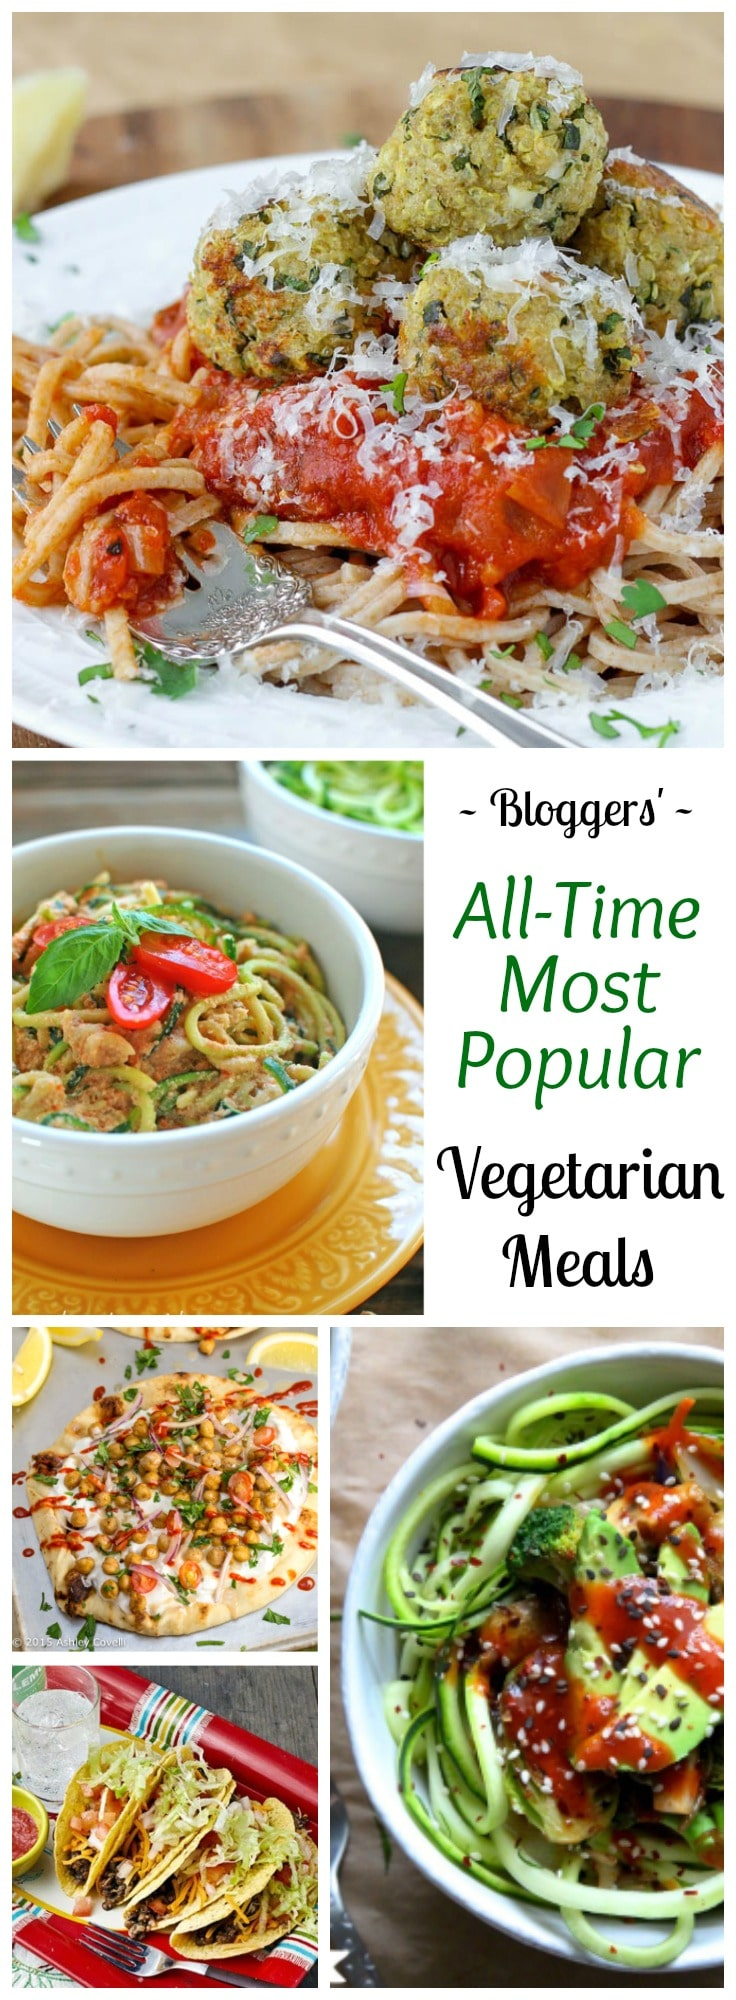 Wildly popular vegetarian meals that are perfect for Meatless Monday … or any day! Easy vegetarian recipes that'll even keep meat-lovers happy! Perfect for the whole family! | www.TwoHealthyKitchens.com